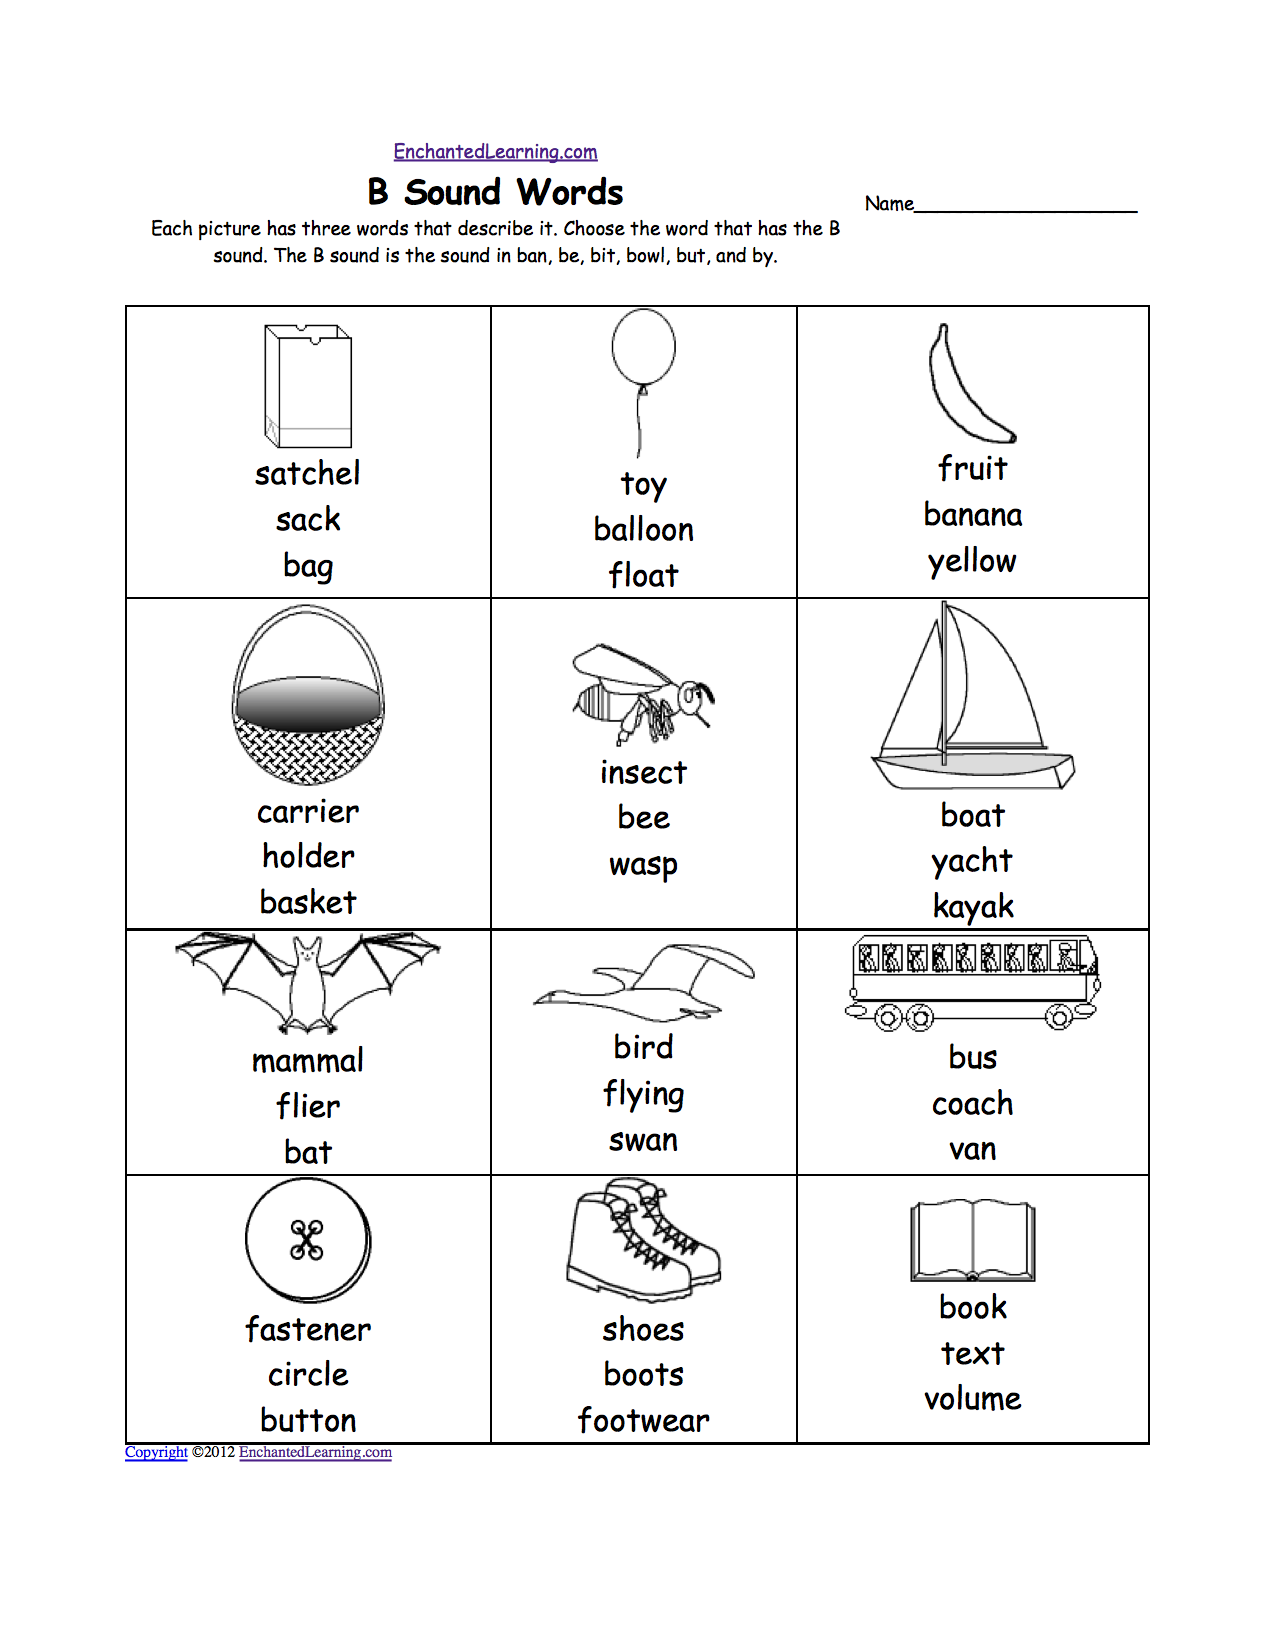 Weirdmailus  Fascinating Phonics Worksheets Multiple Choice Worksheets To Print  With Exquisite Quotbquot Sound Phonics Worksheet Multiple Choice Each Picture Has Three Words That Describe It Choose The Word That Has A Quotbquot Sound The Quotbquot Sound Is The Sound  With Astounding Worksheet Graphing Linear Equations Also Nonfiction Text Feature Worksheet In Addition Irs  Social Security Worksheet And Times Tables Printable Worksheets As Well As First Aid Worksheets For Kids Additionally Surrealism Worksheet From Enchantedlearningcom With Weirdmailus  Exquisite Phonics Worksheets Multiple Choice Worksheets To Print  With Astounding Quotbquot Sound Phonics Worksheet Multiple Choice Each Picture Has Three Words That Describe It Choose The Word That Has A Quotbquot Sound The Quotbquot Sound Is The Sound  And Fascinating Worksheet Graphing Linear Equations Also Nonfiction Text Feature Worksheet In Addition Irs  Social Security Worksheet From Enchantedlearningcom